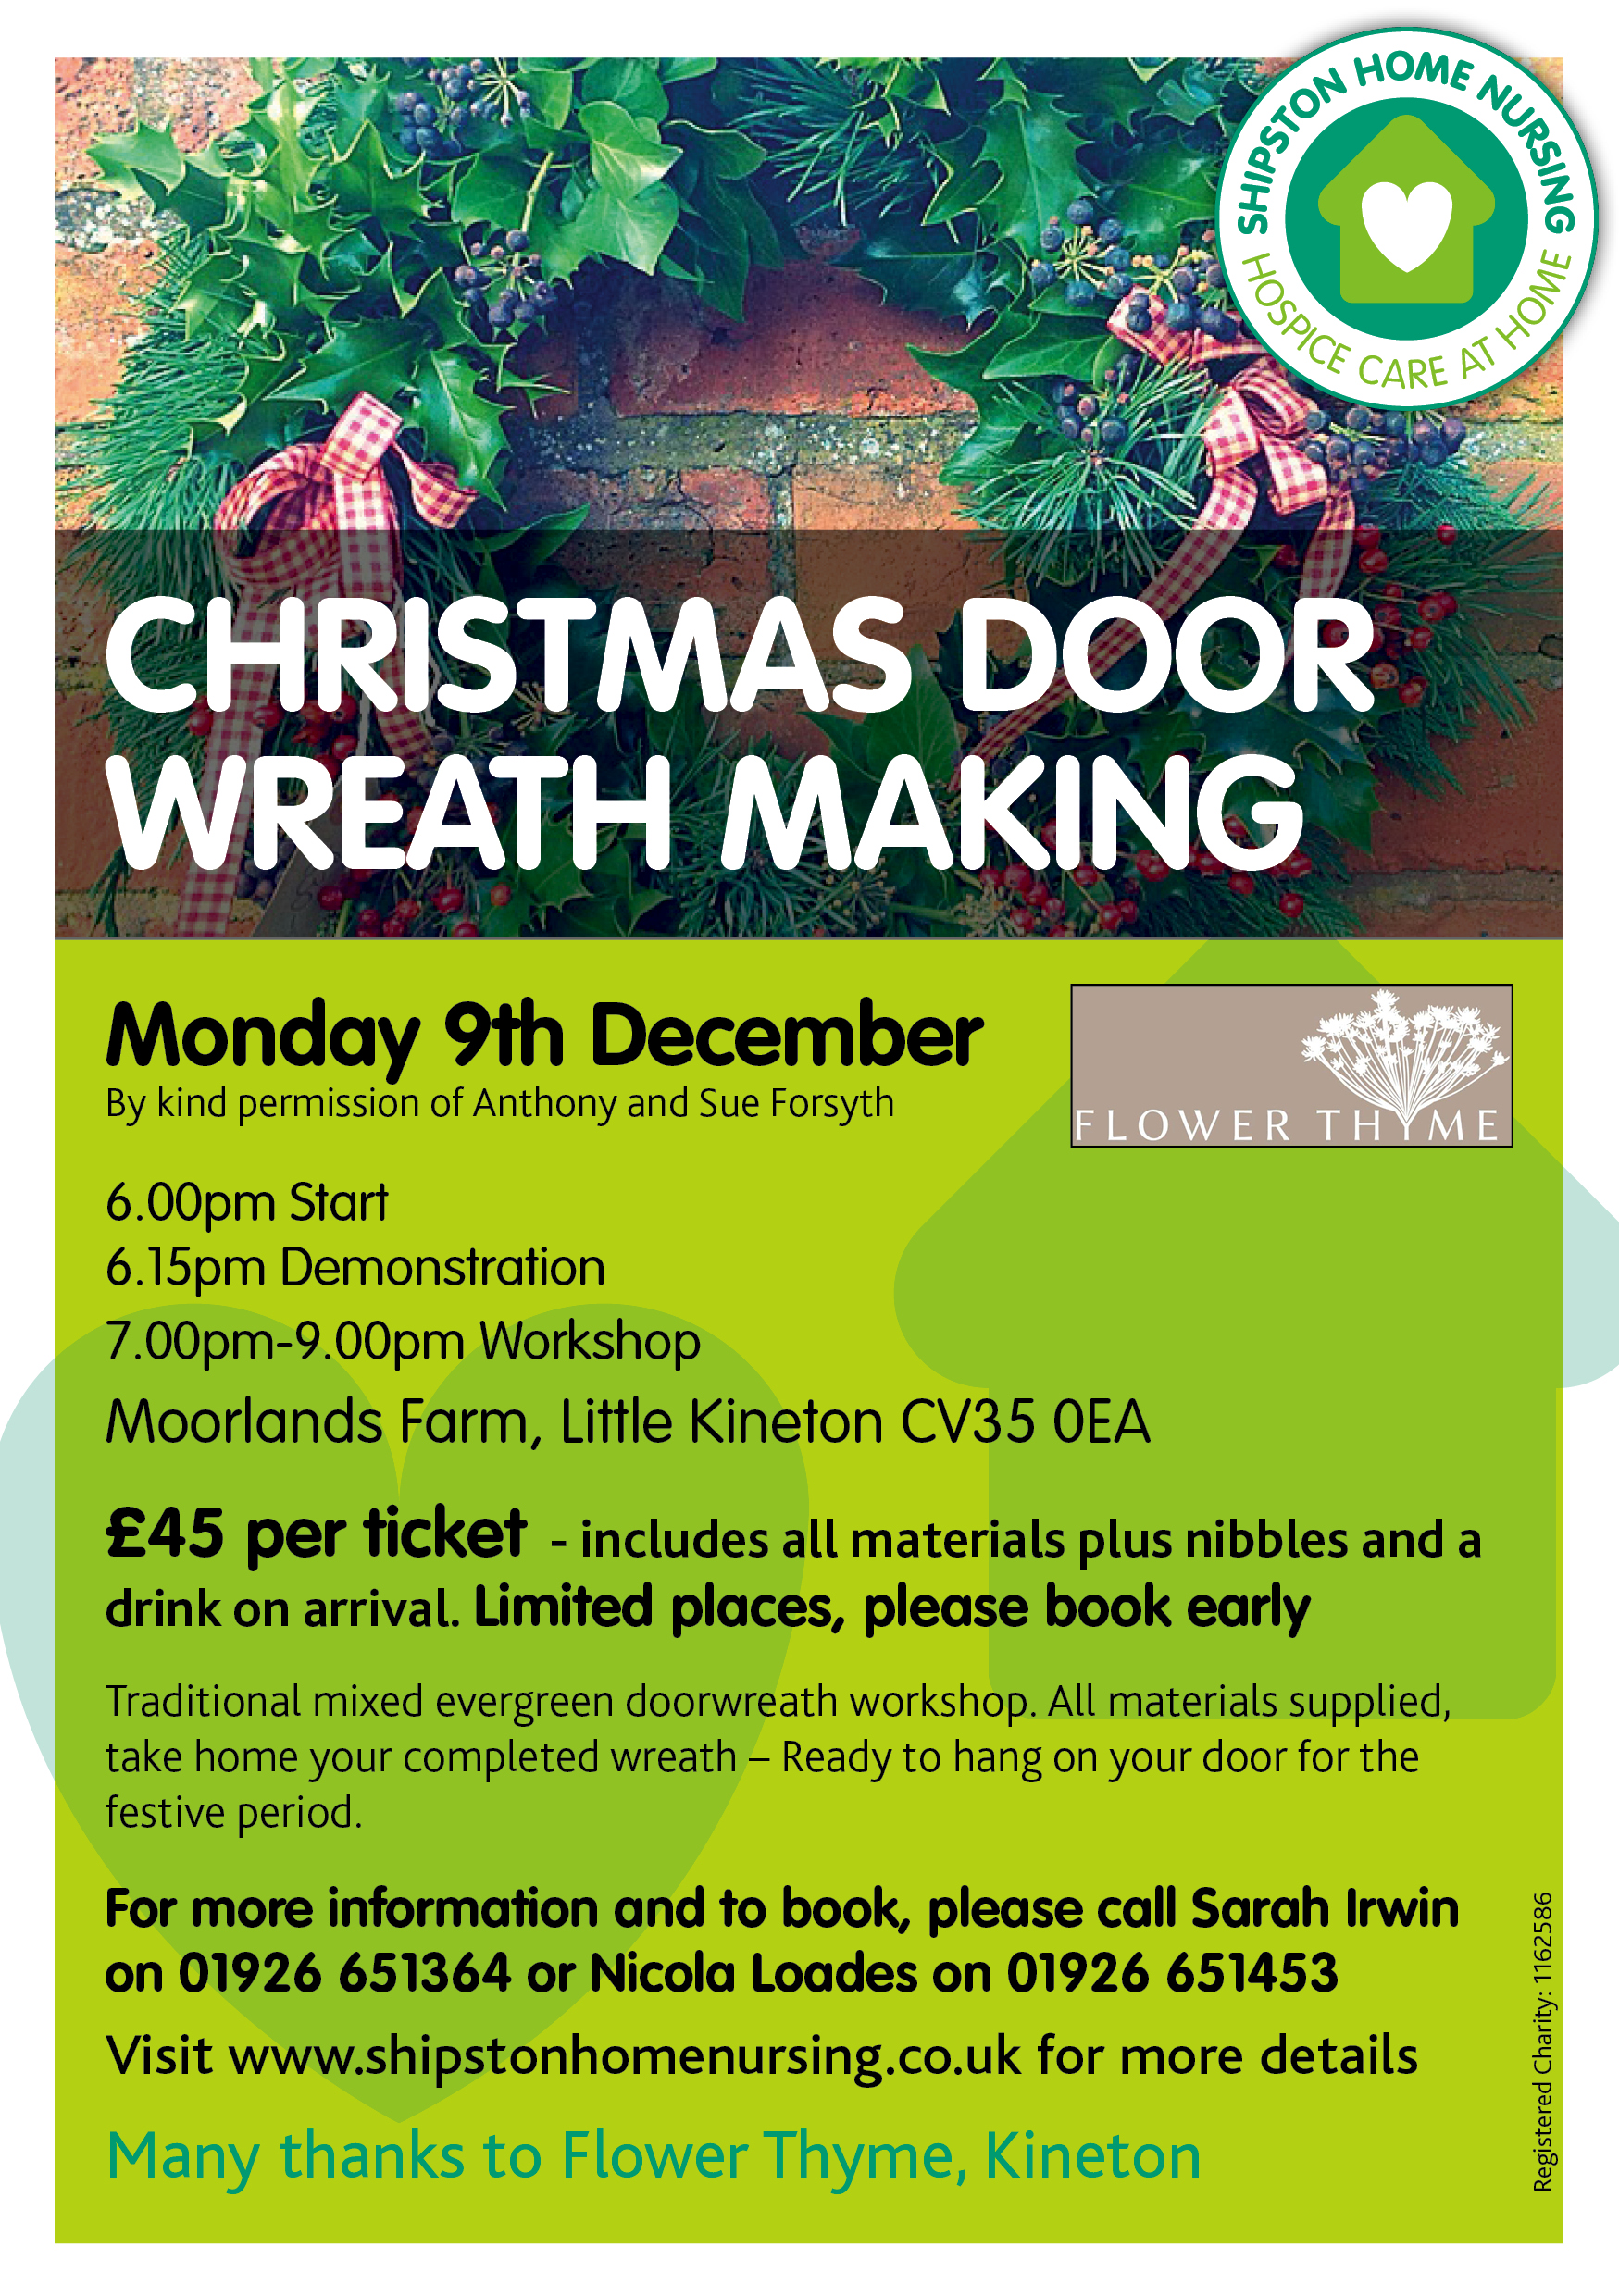 Christmas Wreath Making Workshop - Supporting Shipston Home Nursing